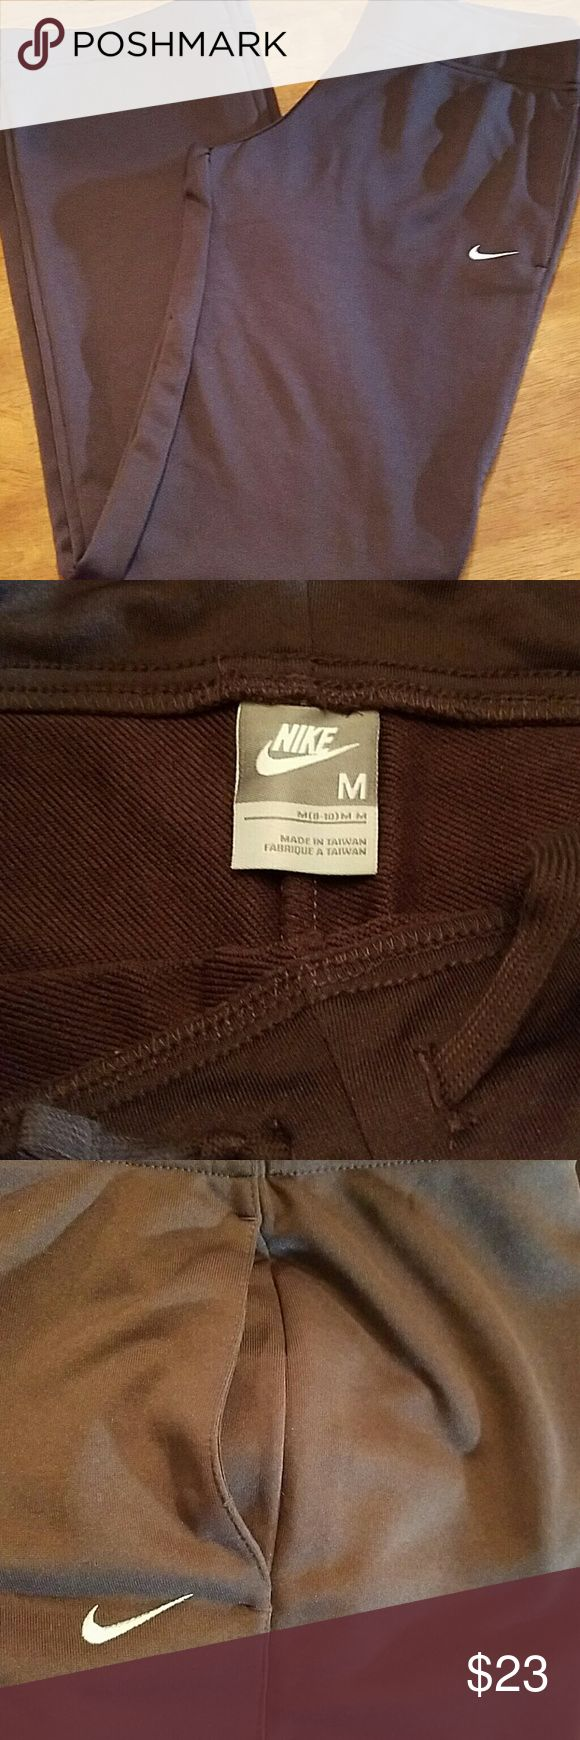 Nike athletic pants ladies size medium Ladies Nike athletic pants in excellent condition they are chocolate brown and have side pockets in a drawstring waist easier to high-quality Nike slacks that you can wear as athletic or everyday. These are great pair of pants. They have a 32 inch inseam size medium and are from a clean non-smoking home. Price is not negotiable. Thank you Nike Pants